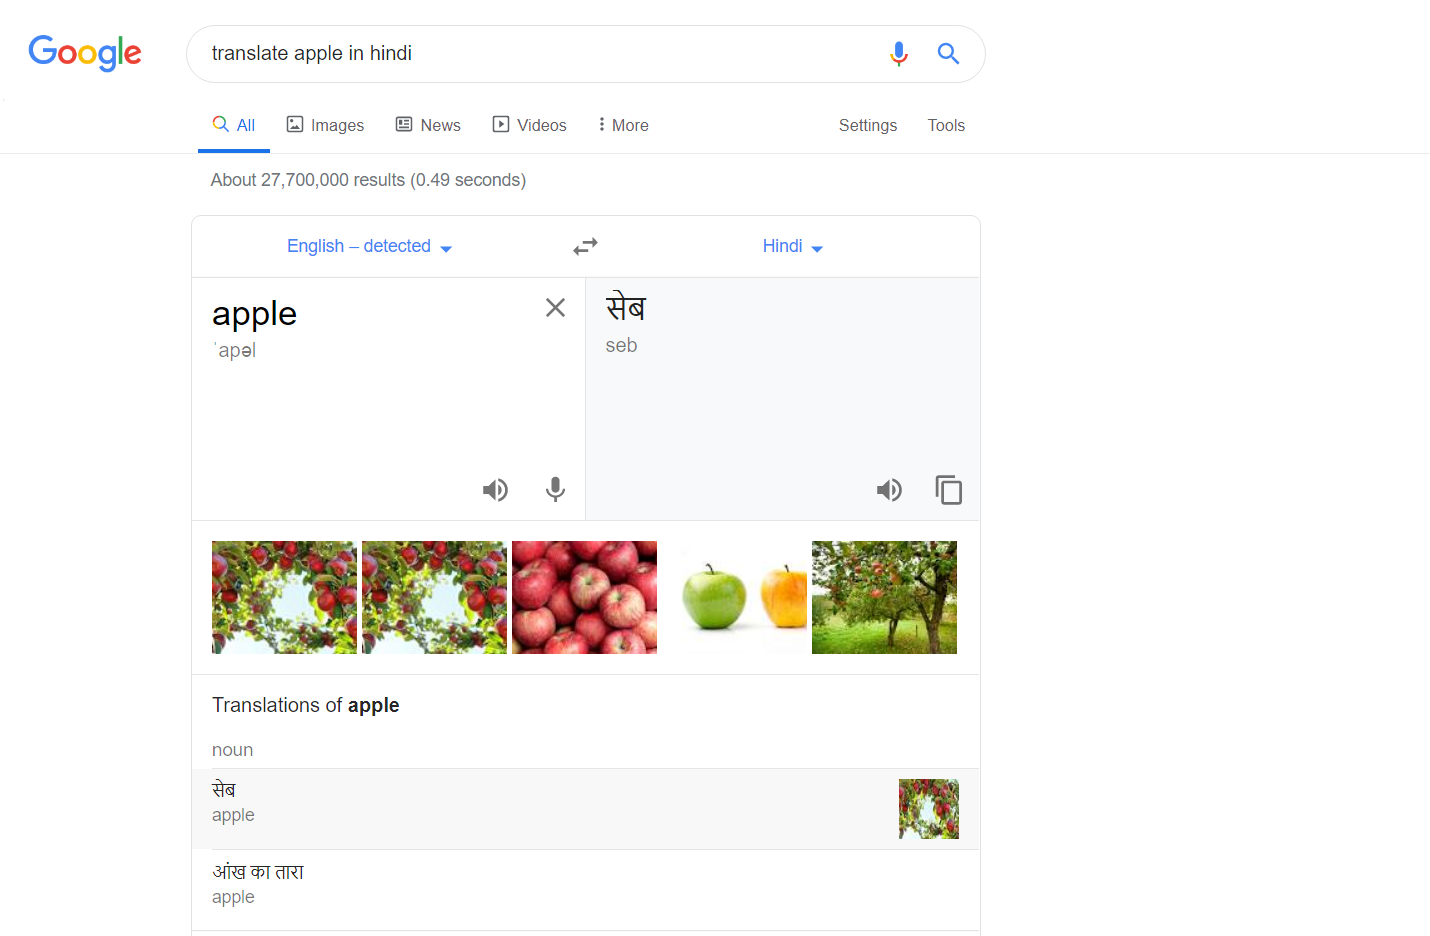 Good news for visual learners: Google now shows images along with translated words in search results for more context